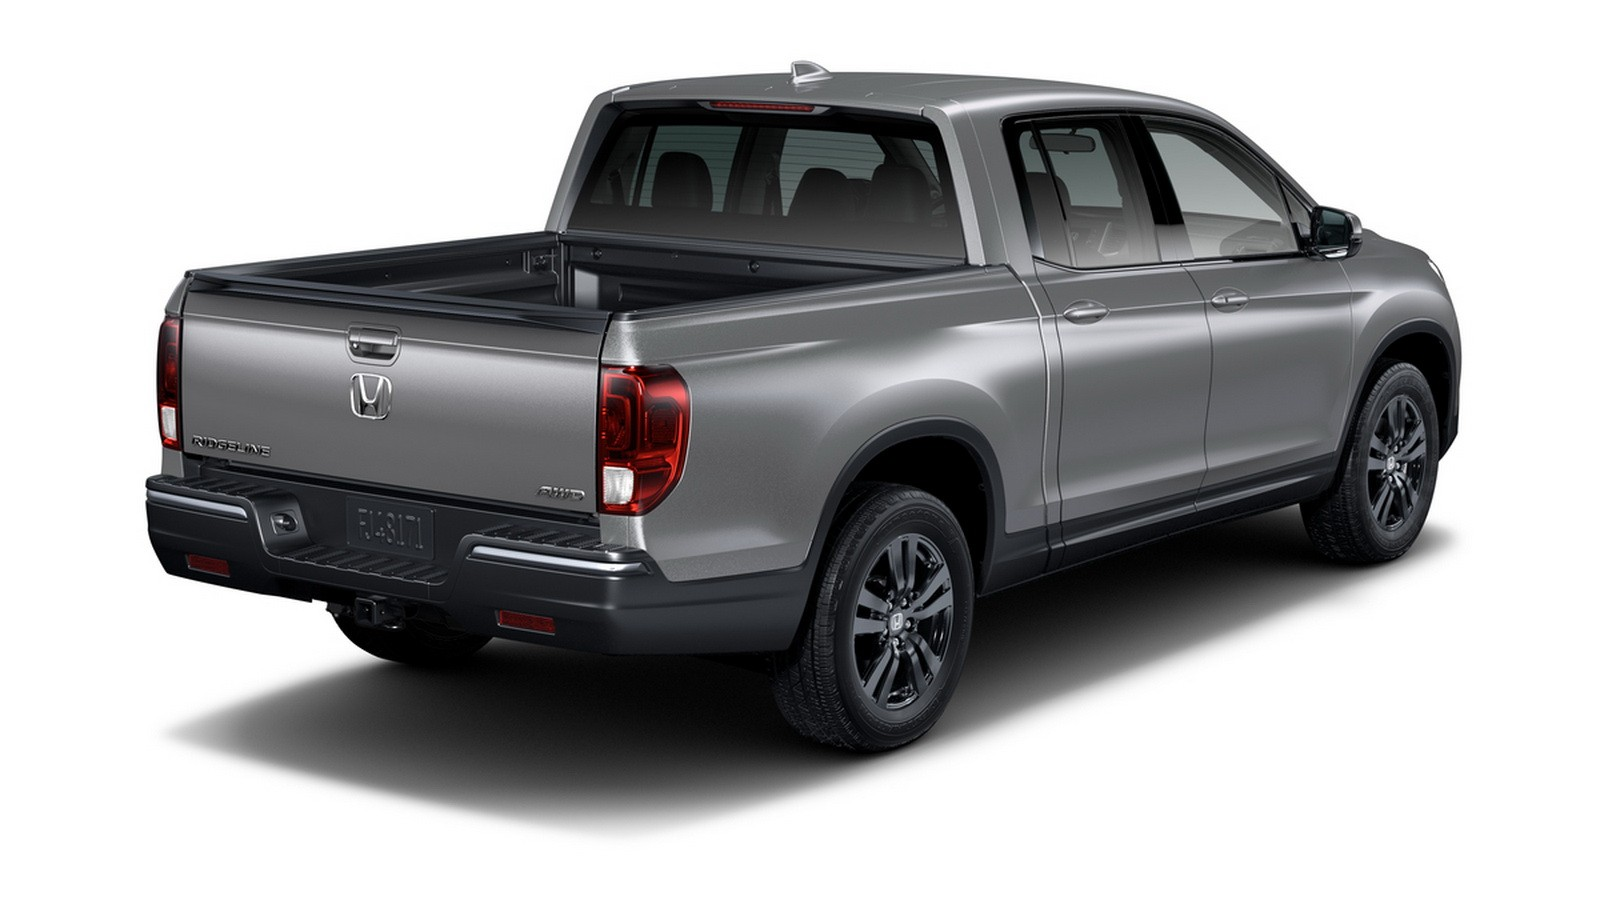 2018 honda ridgeline adds new exterior colors loses three. Black Bedroom Furniture Sets. Home Design Ideas